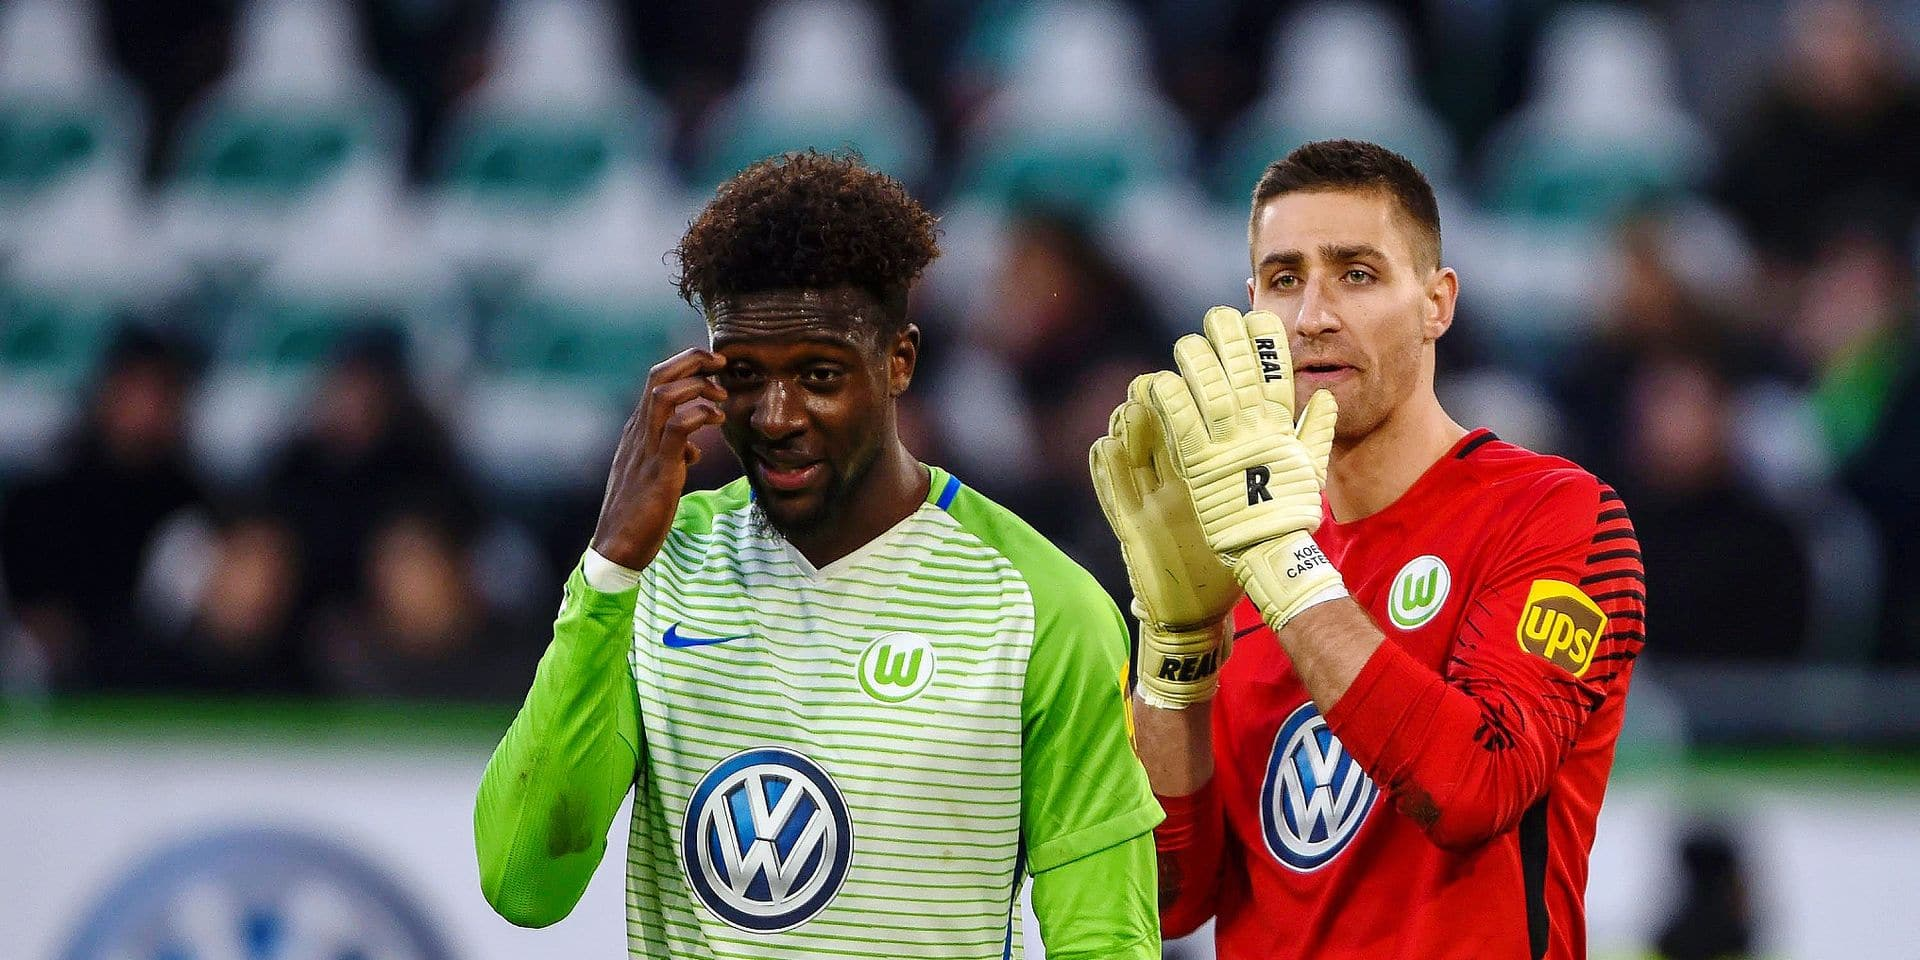 Divock Origi (Wolfsburg), Koen Casteels (Wolfsburg) (180120) WOLFSBURG, DEUTSCHLAND -- Fussball, 1. Bundesliga: VfL Wolfsburg - Eintracht Frankfurt am 20. Januar 2018 in der Volkswagen Arena in Wolfsburg, Deutschland. PICTURES NOT INCLUDED IN THE CONTRACTS ! only BELGIUM !